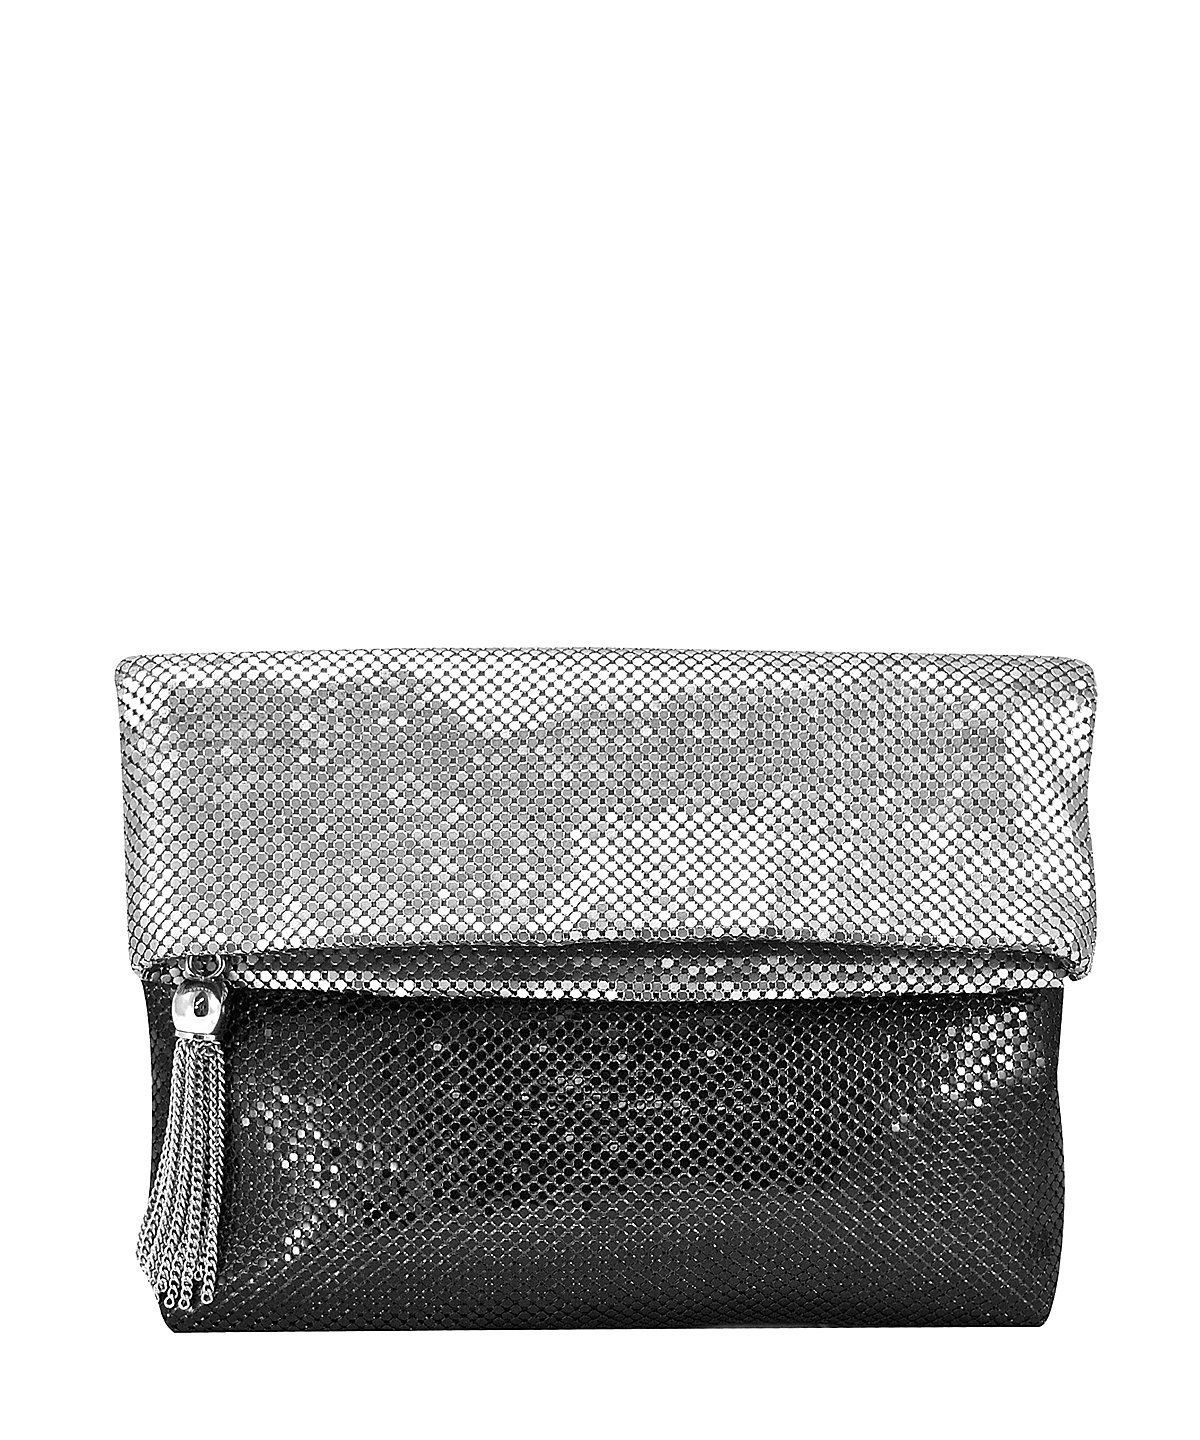 The La Regale Ombre Mesh Foldover Clutch at Bluefly.